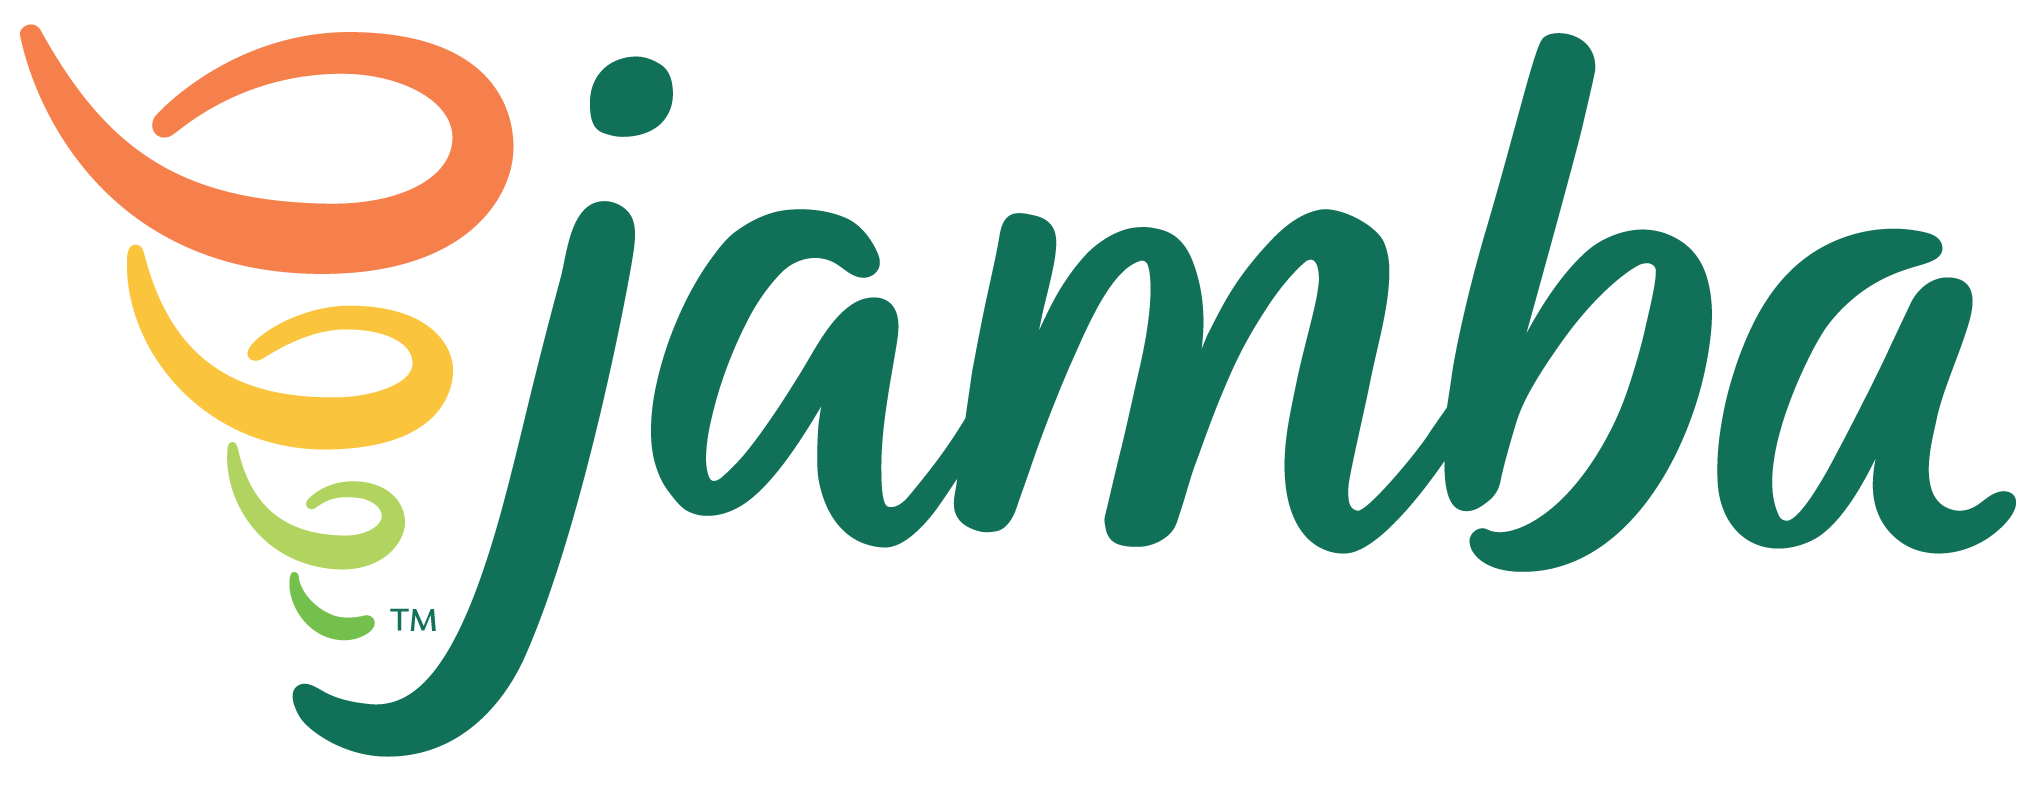 New Name and Logo for Jamba